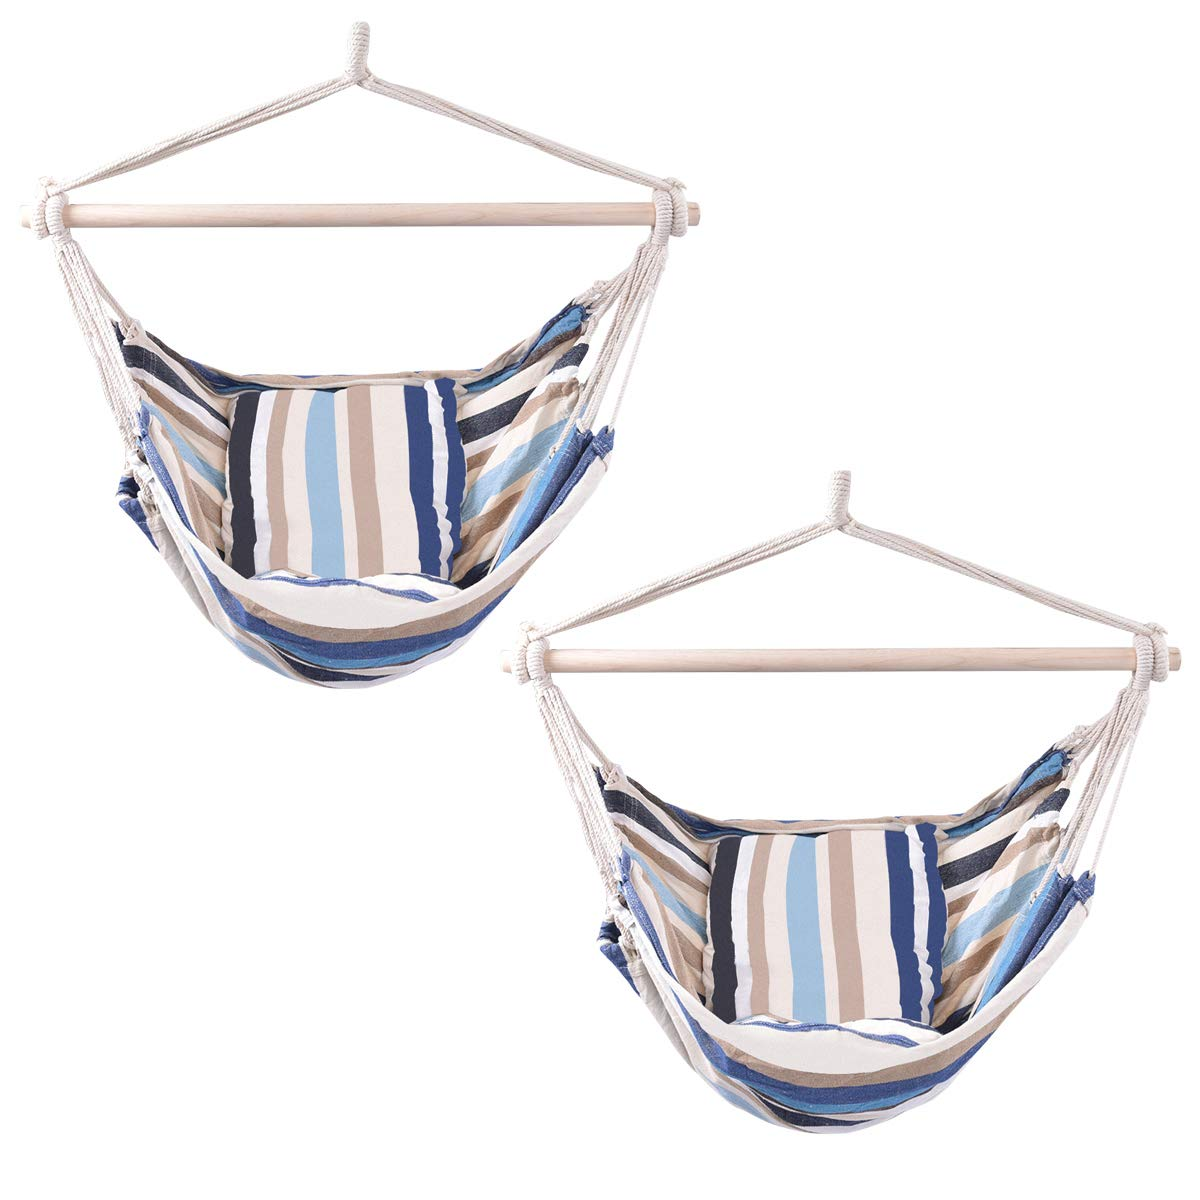 Giantex Hammock Swing, Hanging Rope Hammock Chair with 2 Cushions for Patio Porch Yard Tree C Hammock Stand, Cotton Hanging Air Swing 2, Beige and Blue Multicolor Stripes